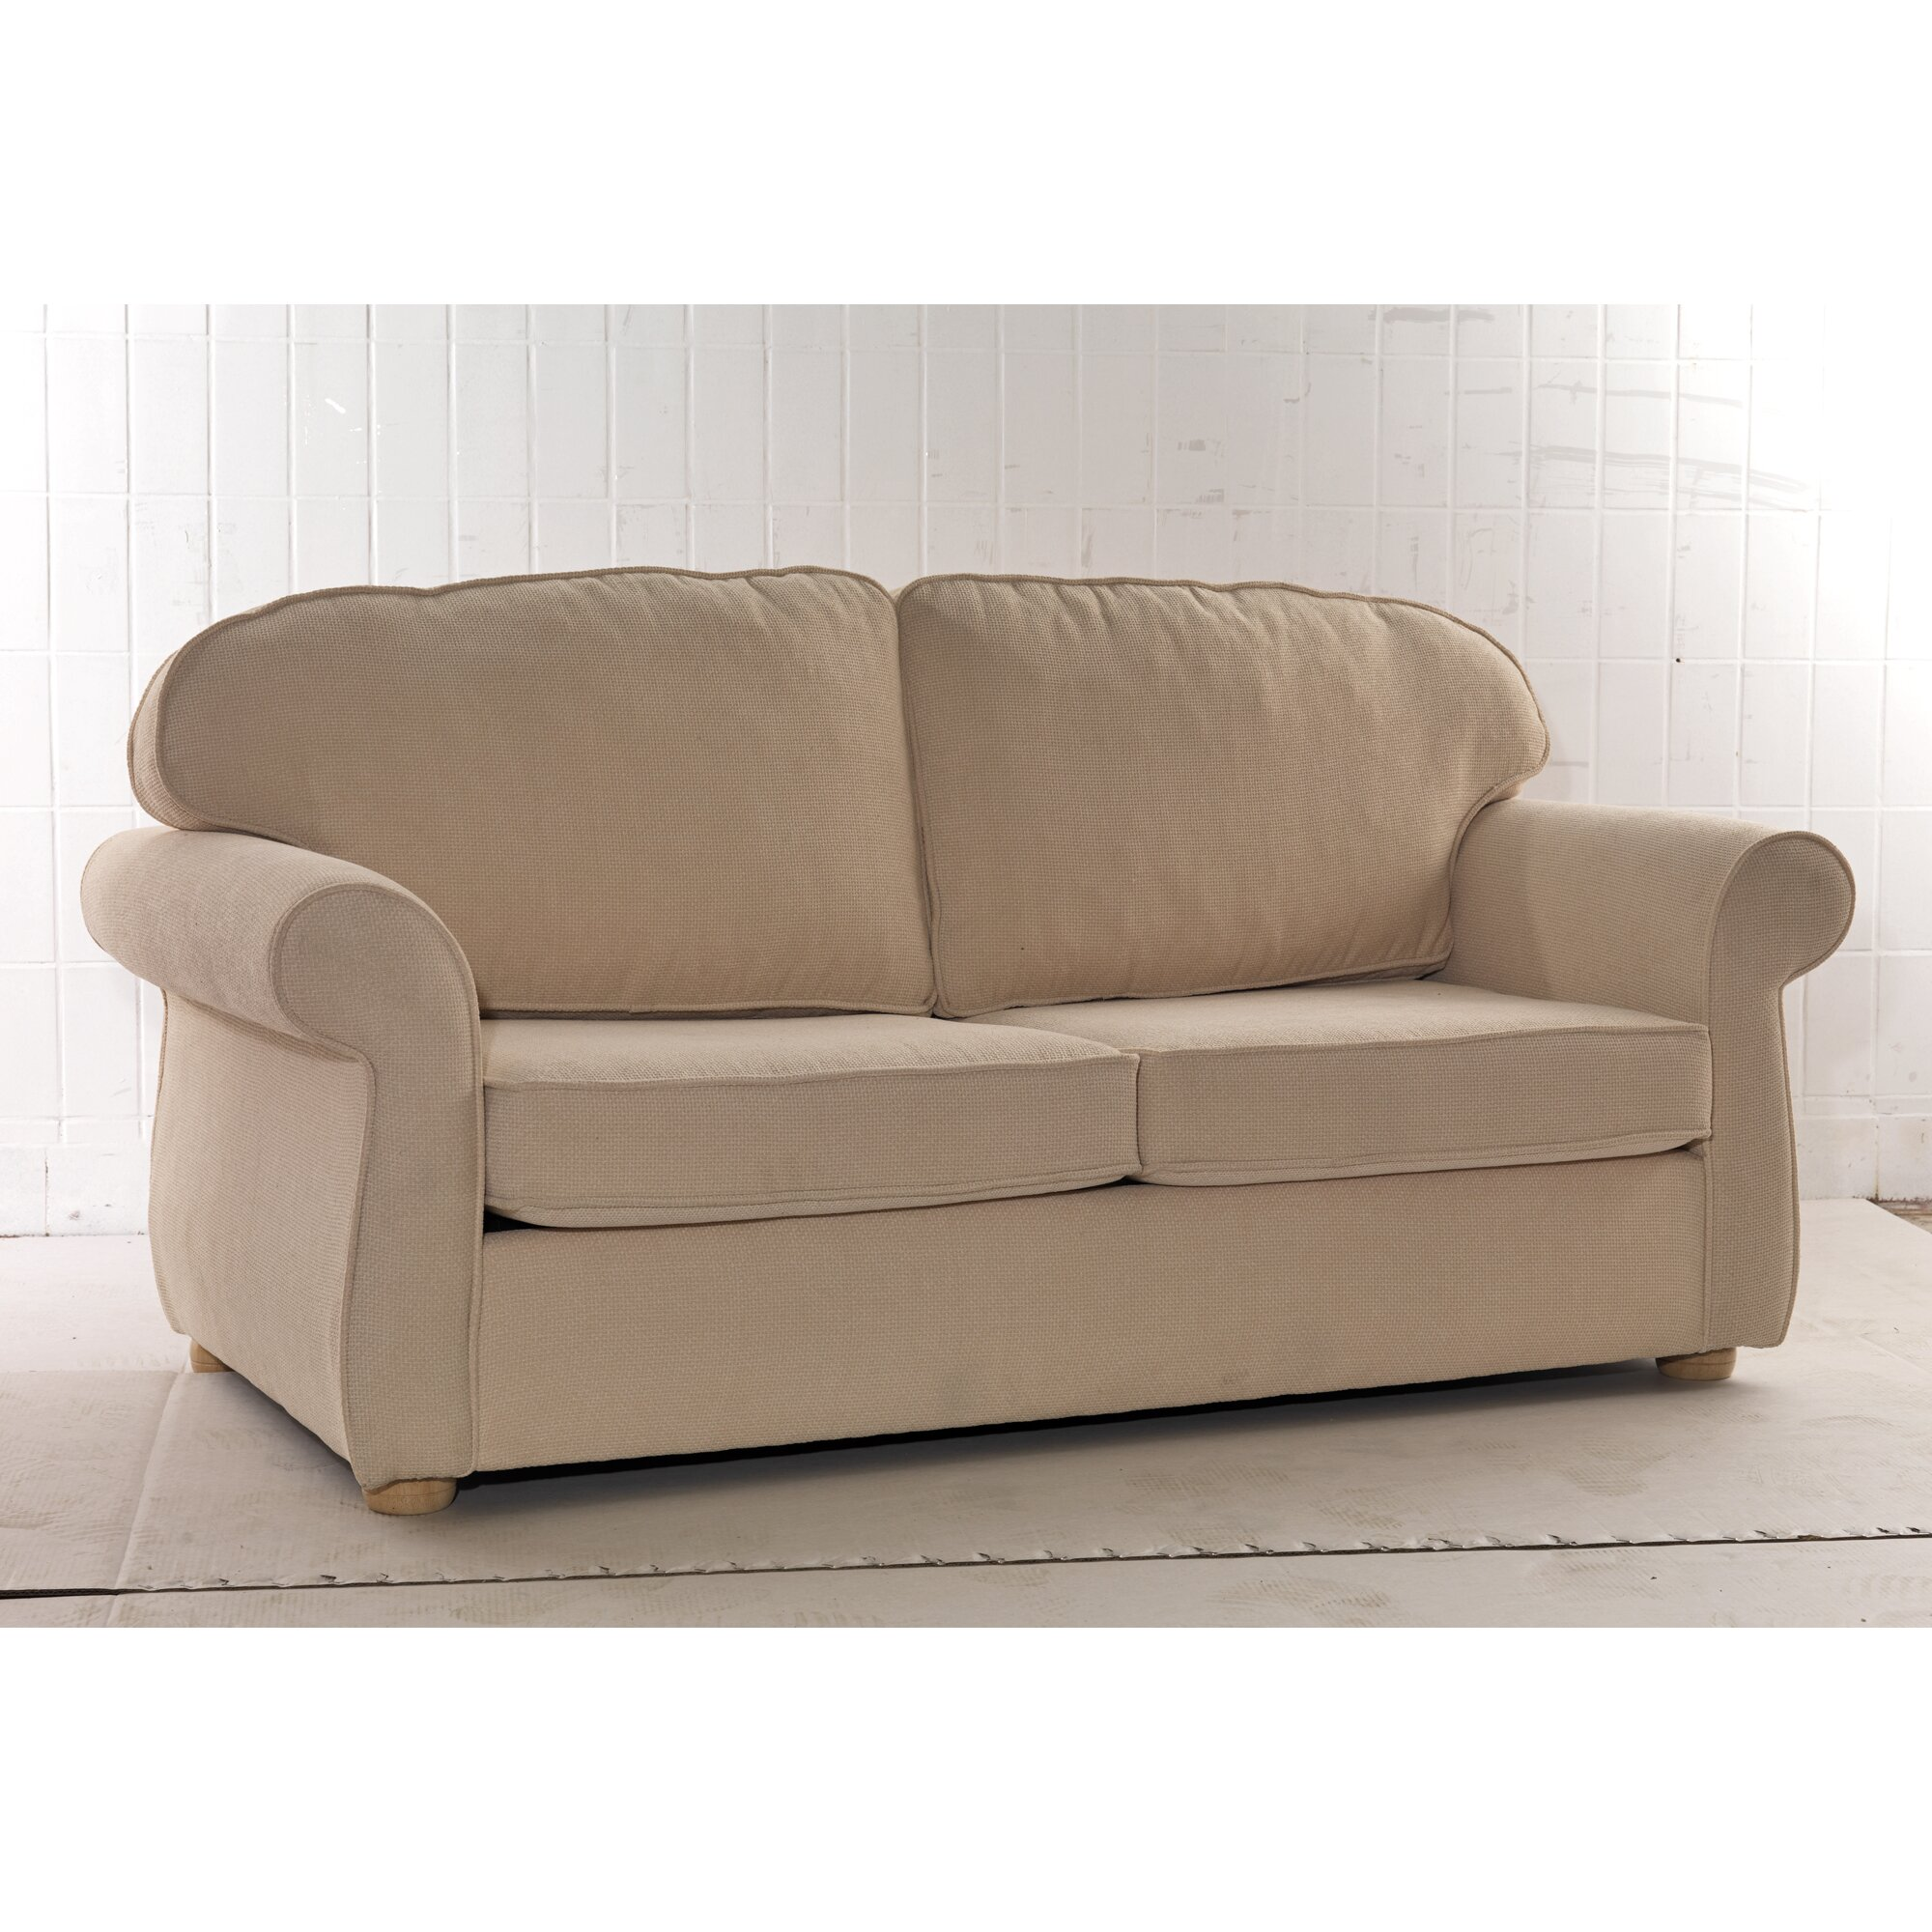 Sofa Cover Uk Furniture Leather Sofa Covers Ready Made Uk For